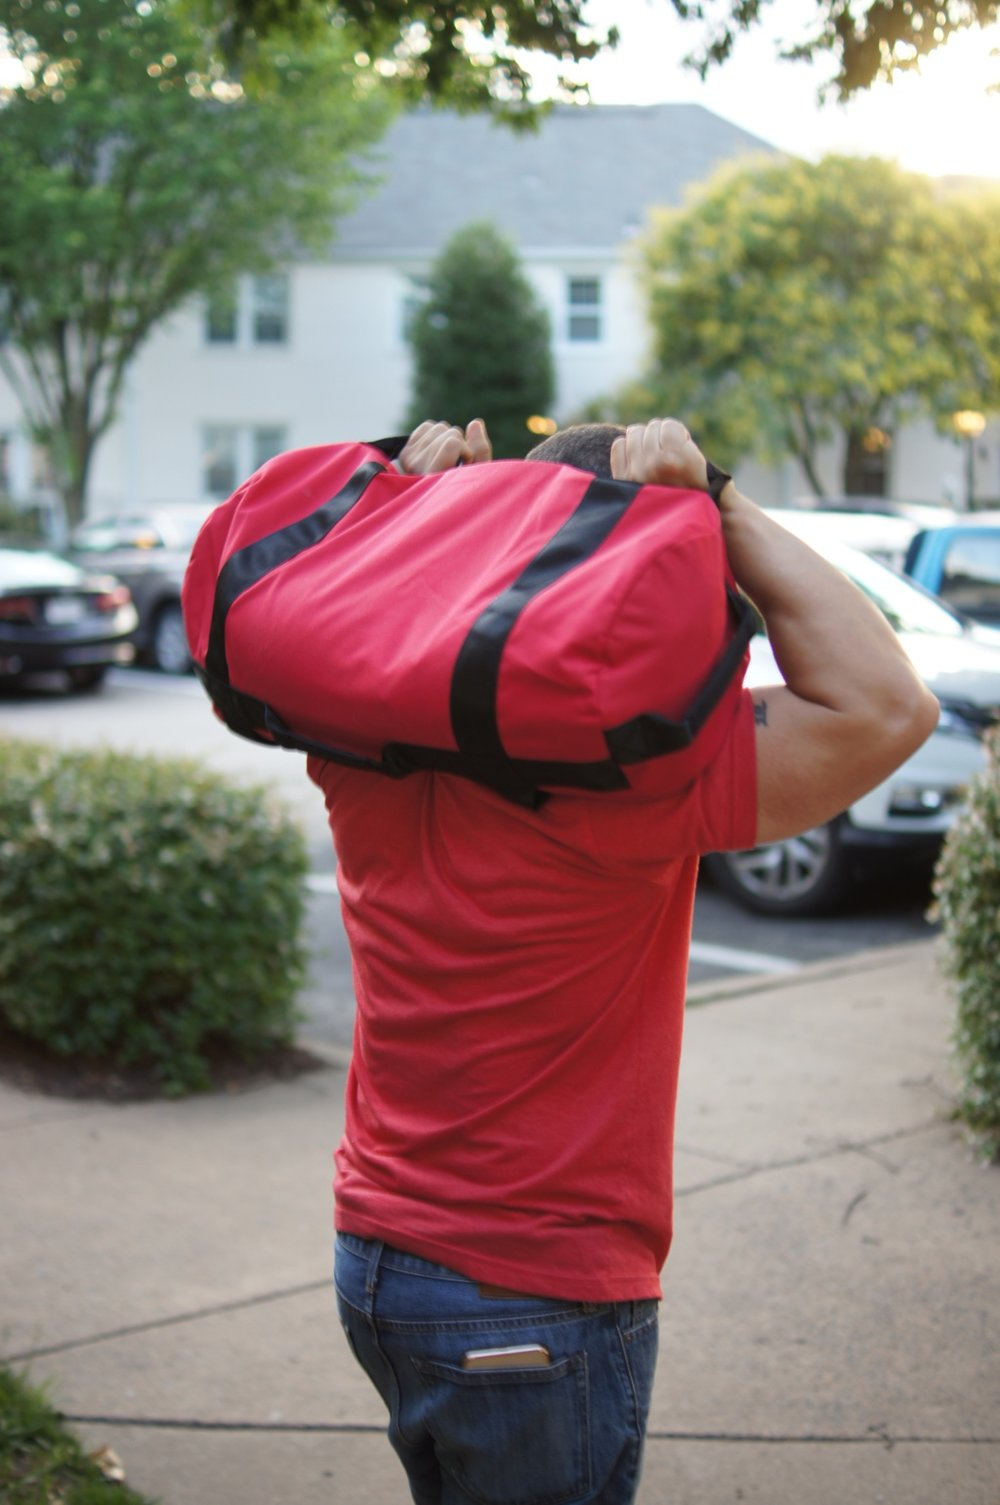 Rep Fitness How to Fill Your Sandbag Pinterest Image 1